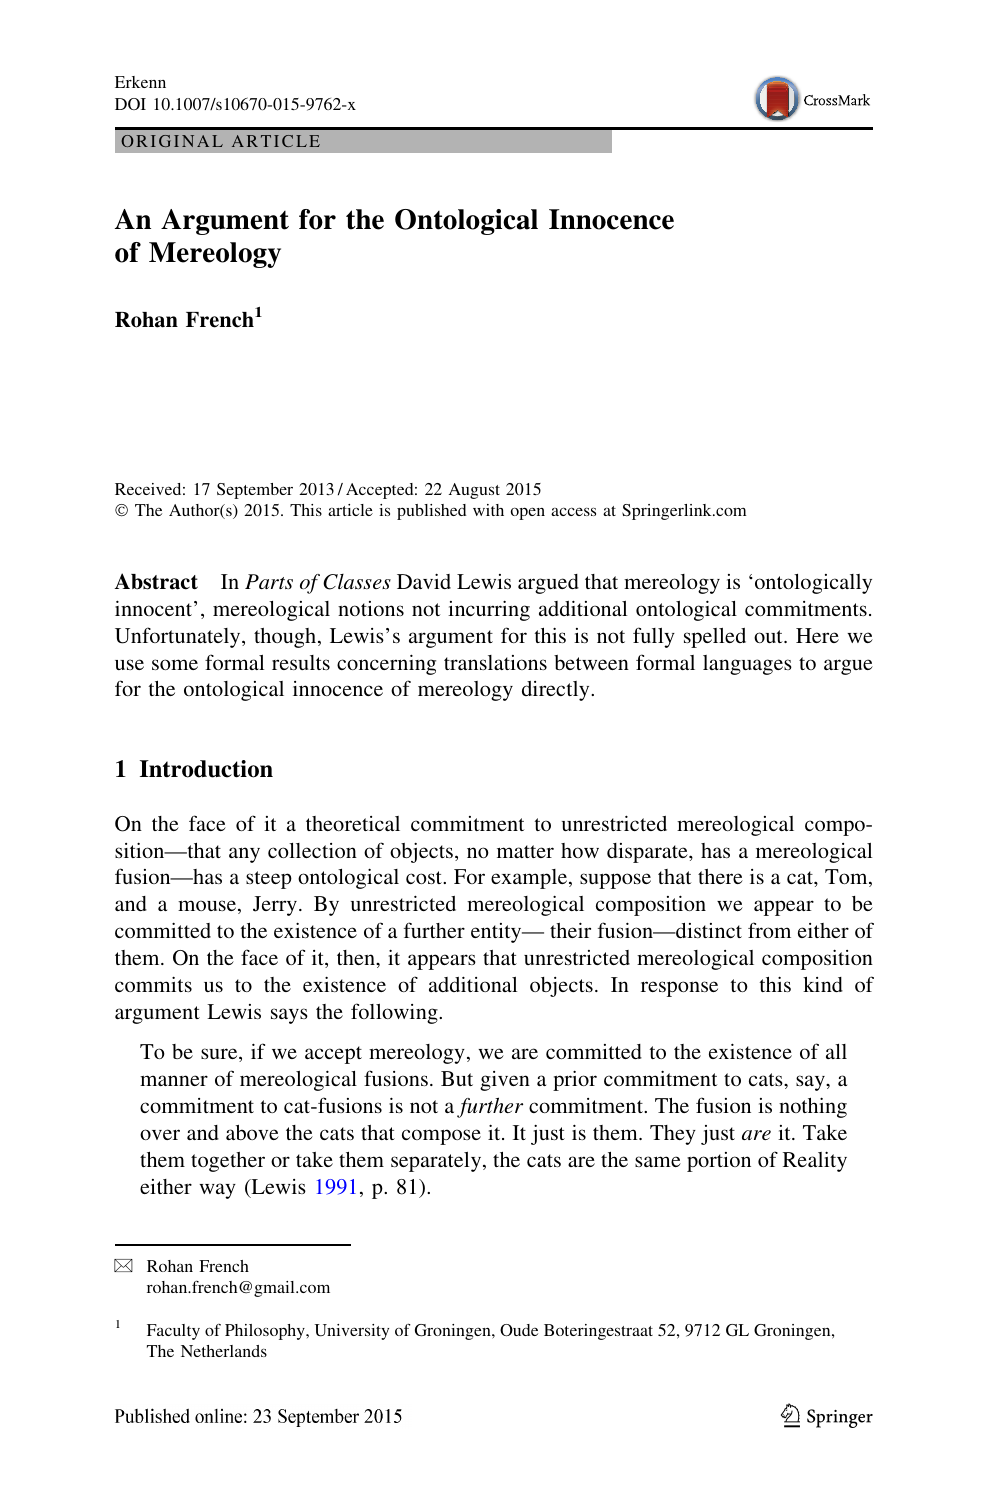 An Argument for the Ontological Innocence of Mereology – topic of ...